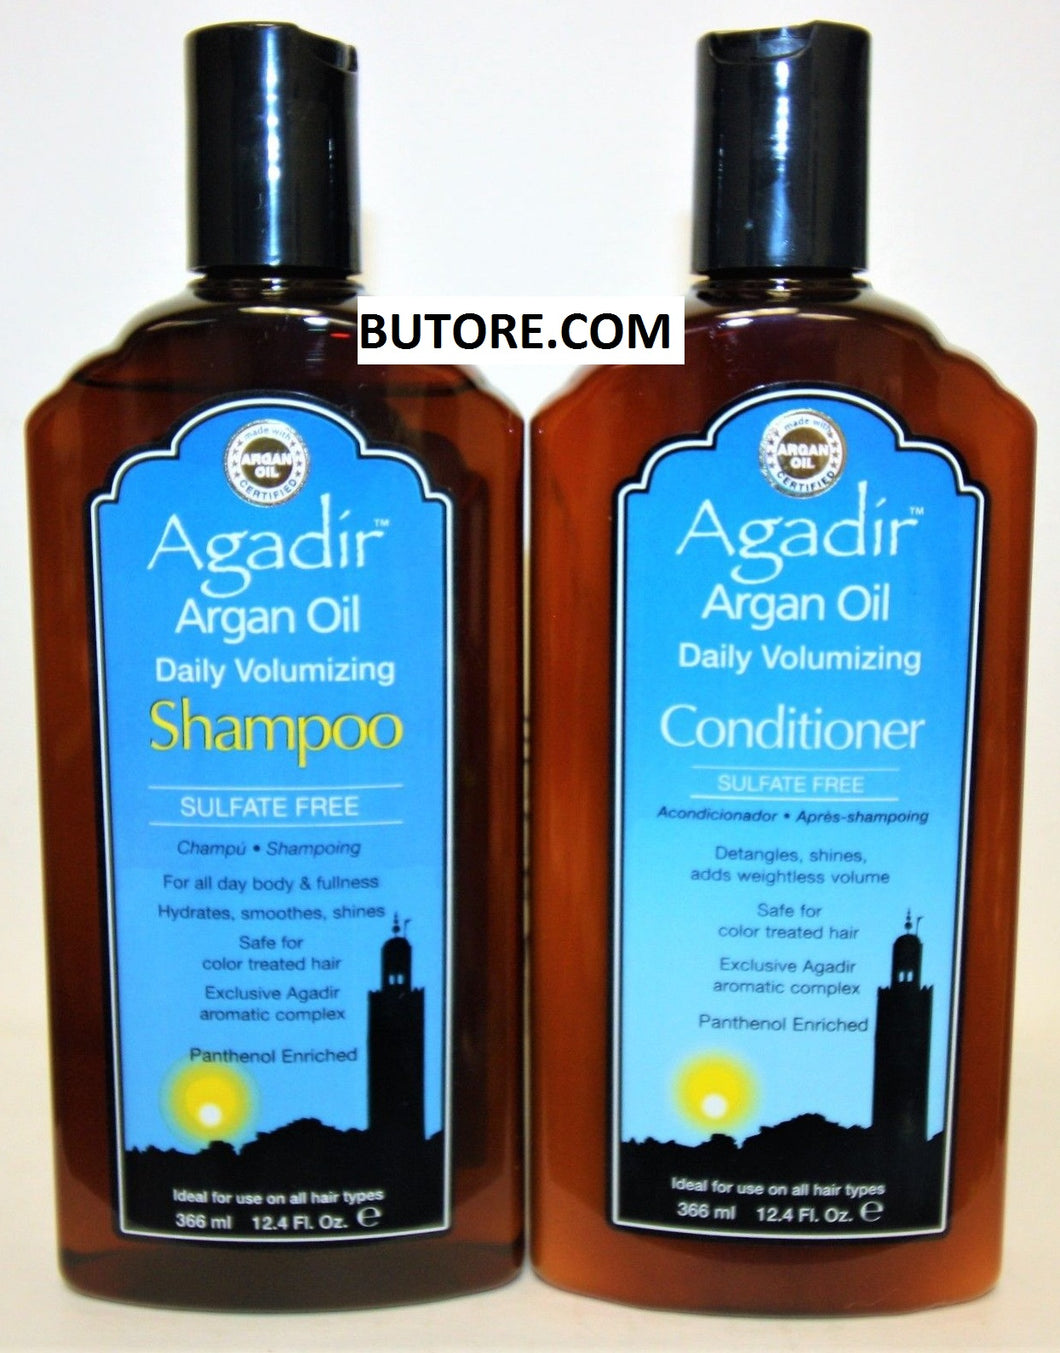 Argan Oil Daily Volumizing Shampoo and Conditioner 12.4 oz (Duo Pack)